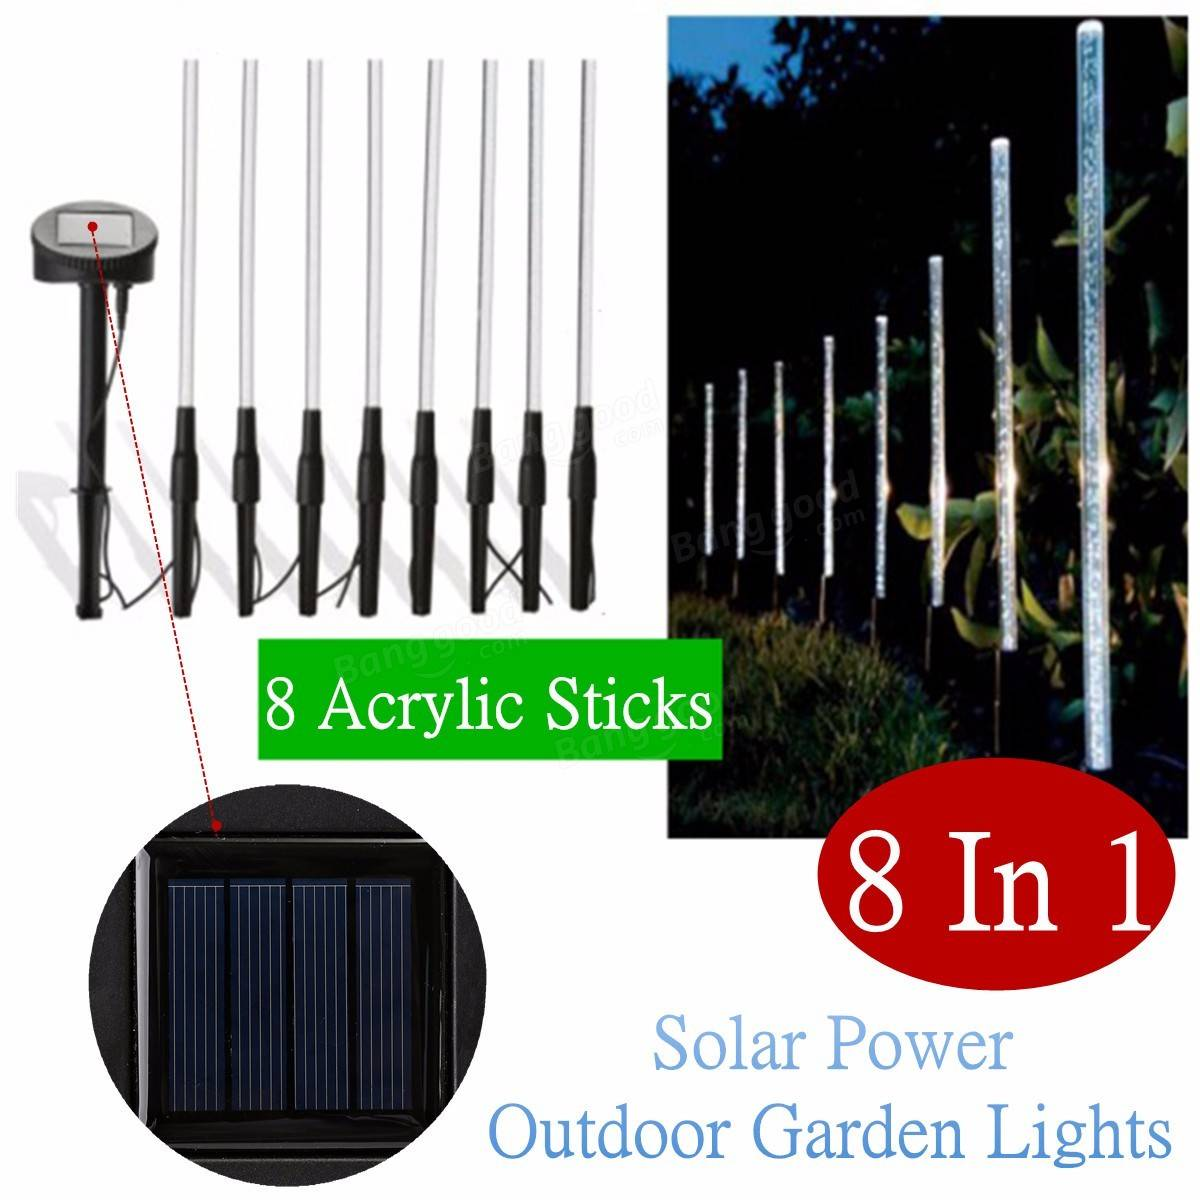 acrylic led solar power light outdoor pathway garden lawn lighting